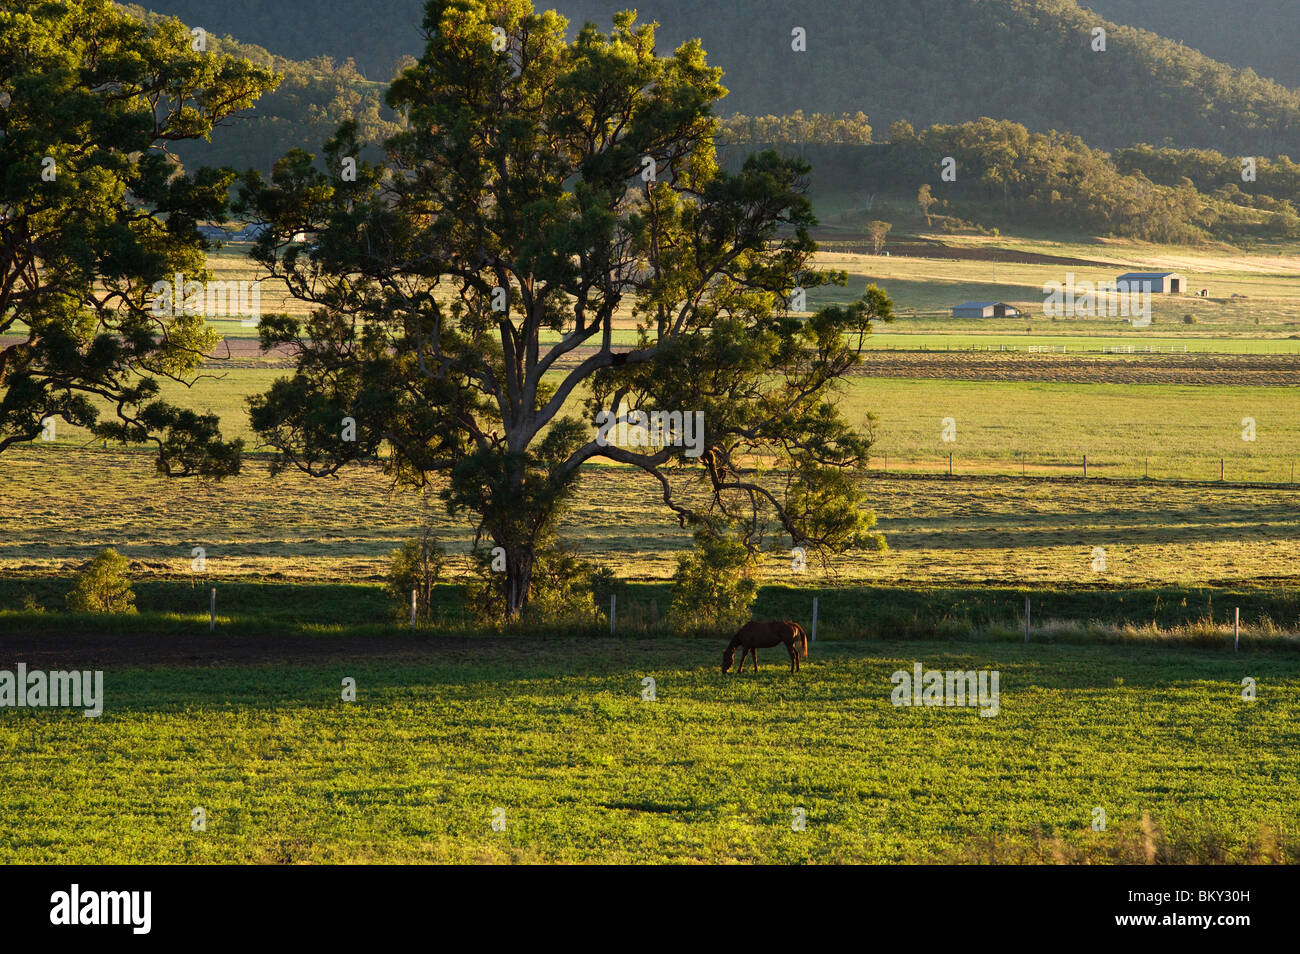 Terres agricoles - Darling Downs Photo Stock